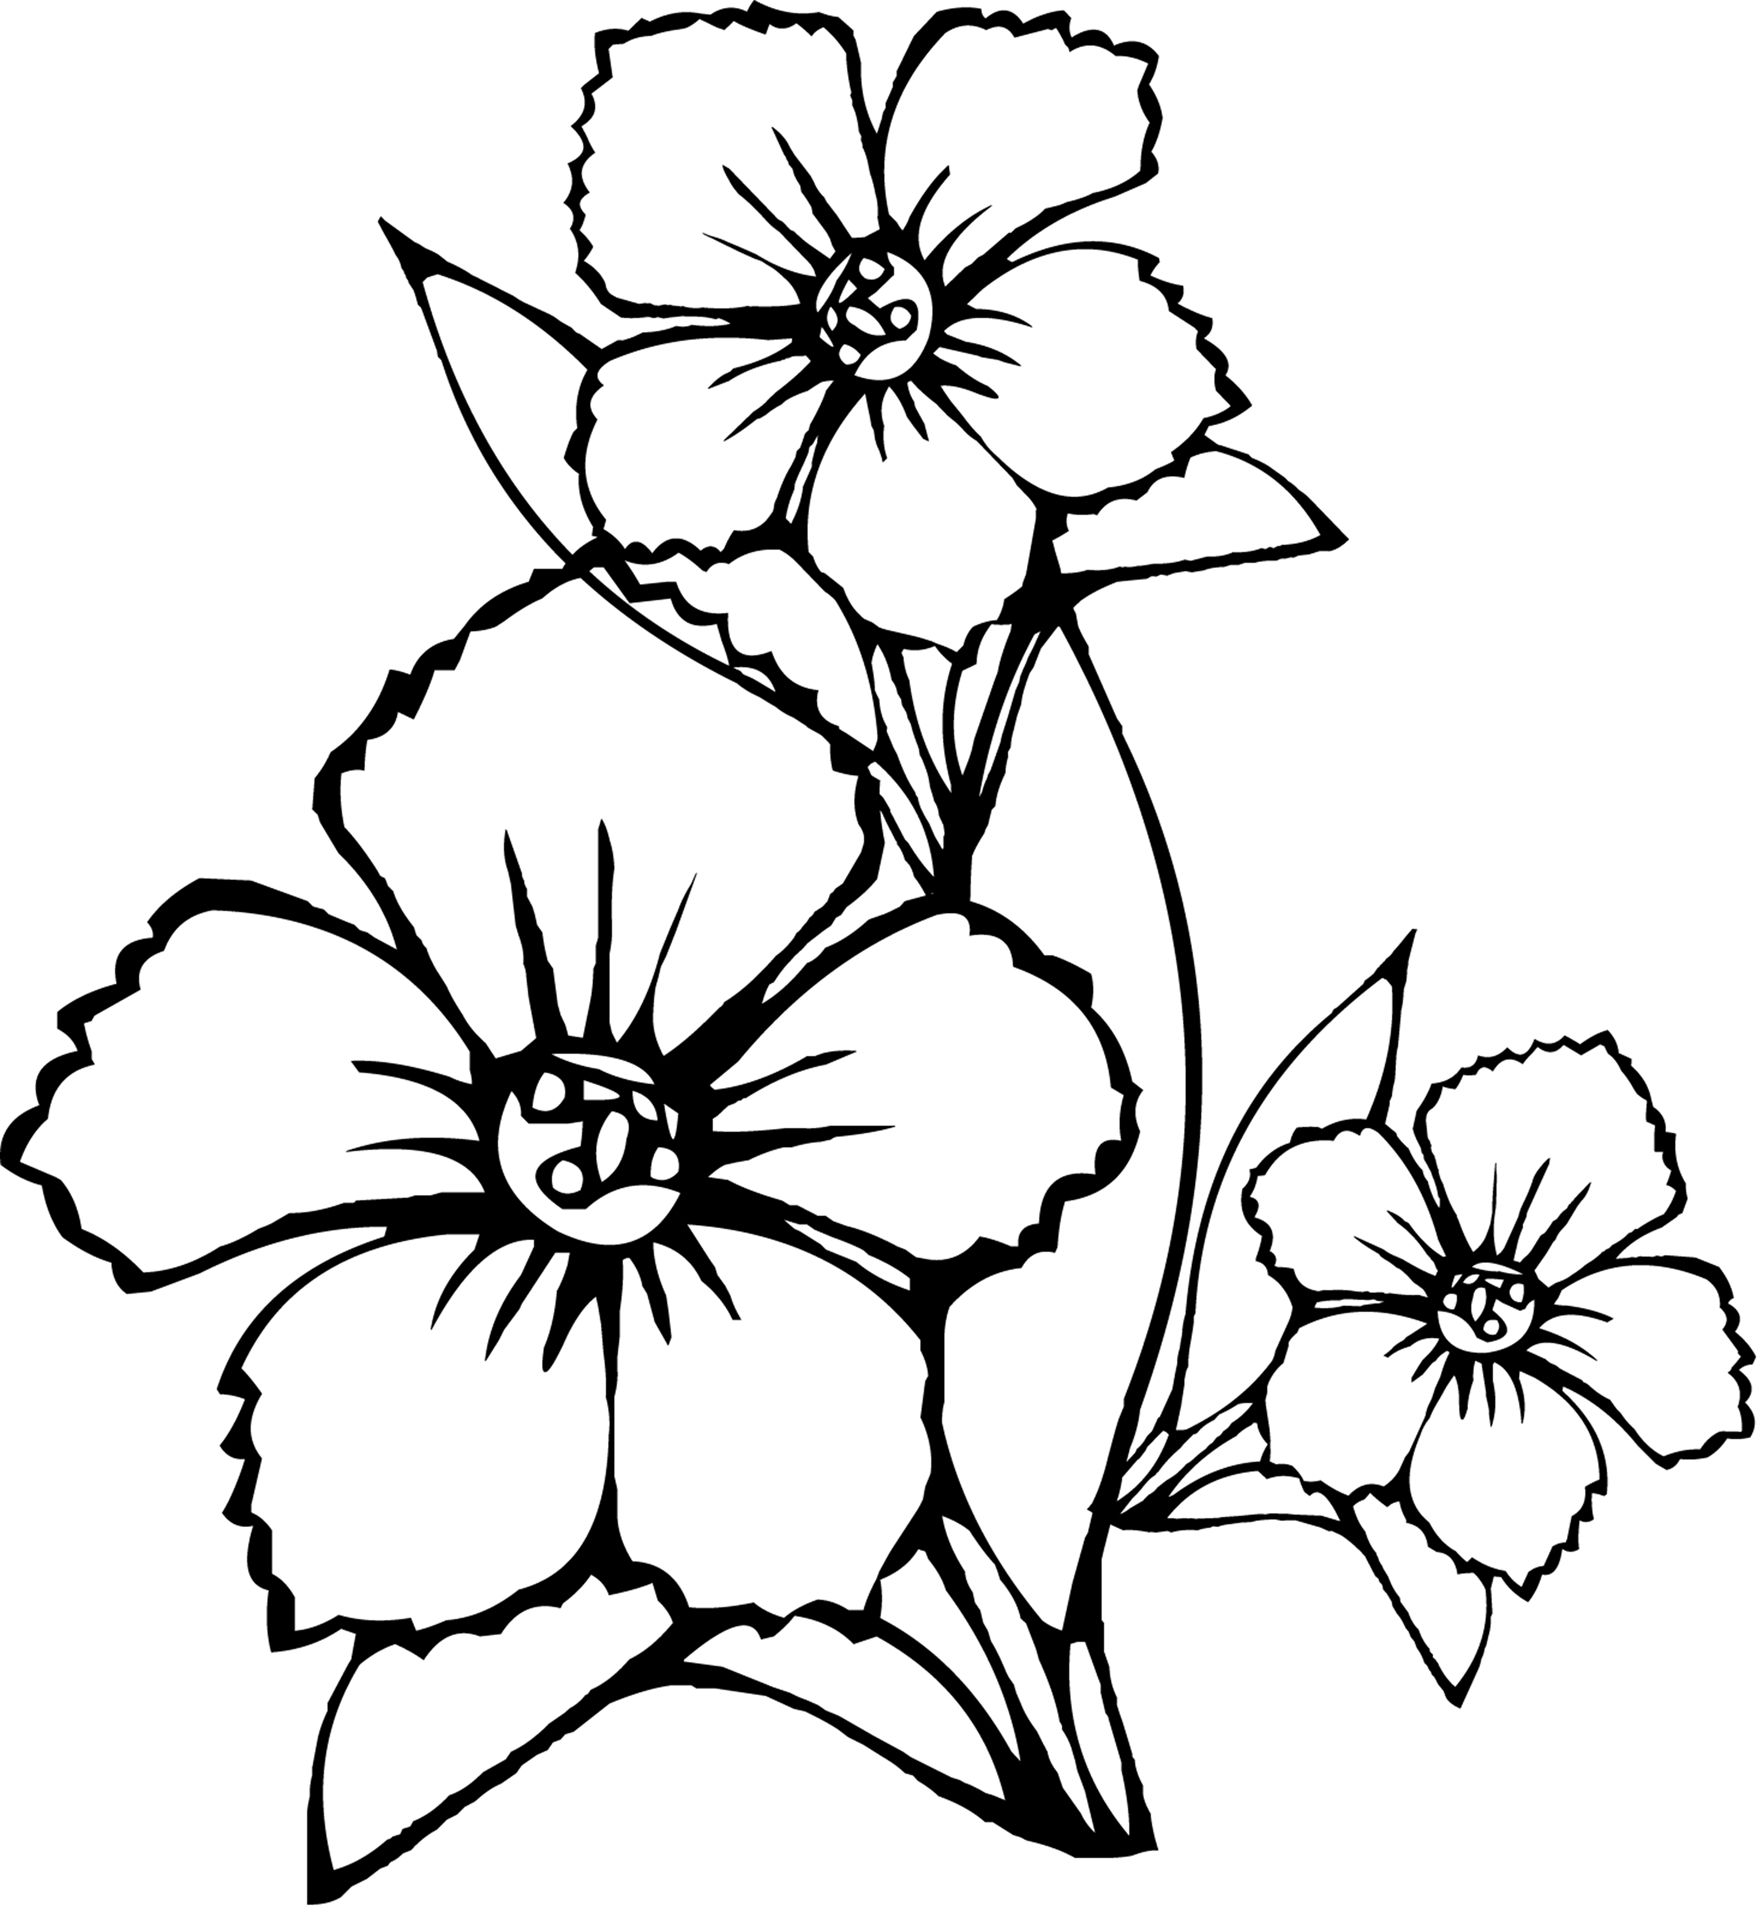 coloring pages flowers printable flower coloring pages iris flowers printable pages coloring flowers